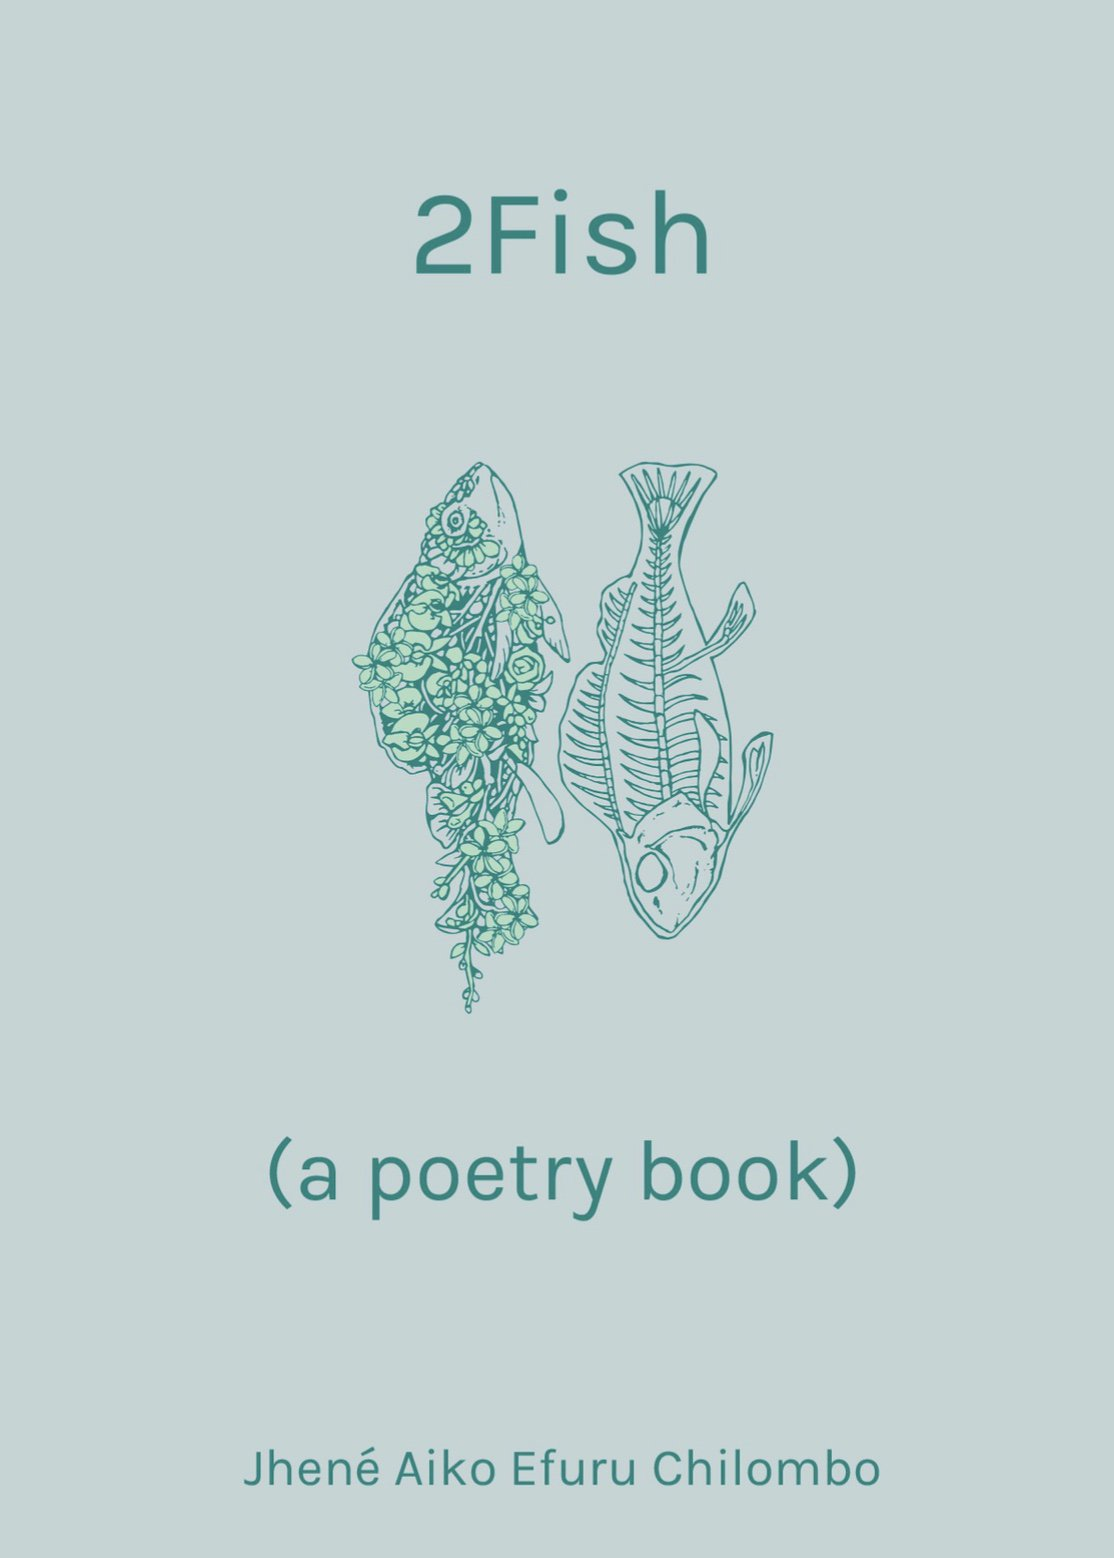 P is for poetry book. Get your copy of #2Fish (a poetry book) everywhere books are sold https://t.co/aIRuu7Z0Ai #MAP https://t.co/7cM5HnDu66